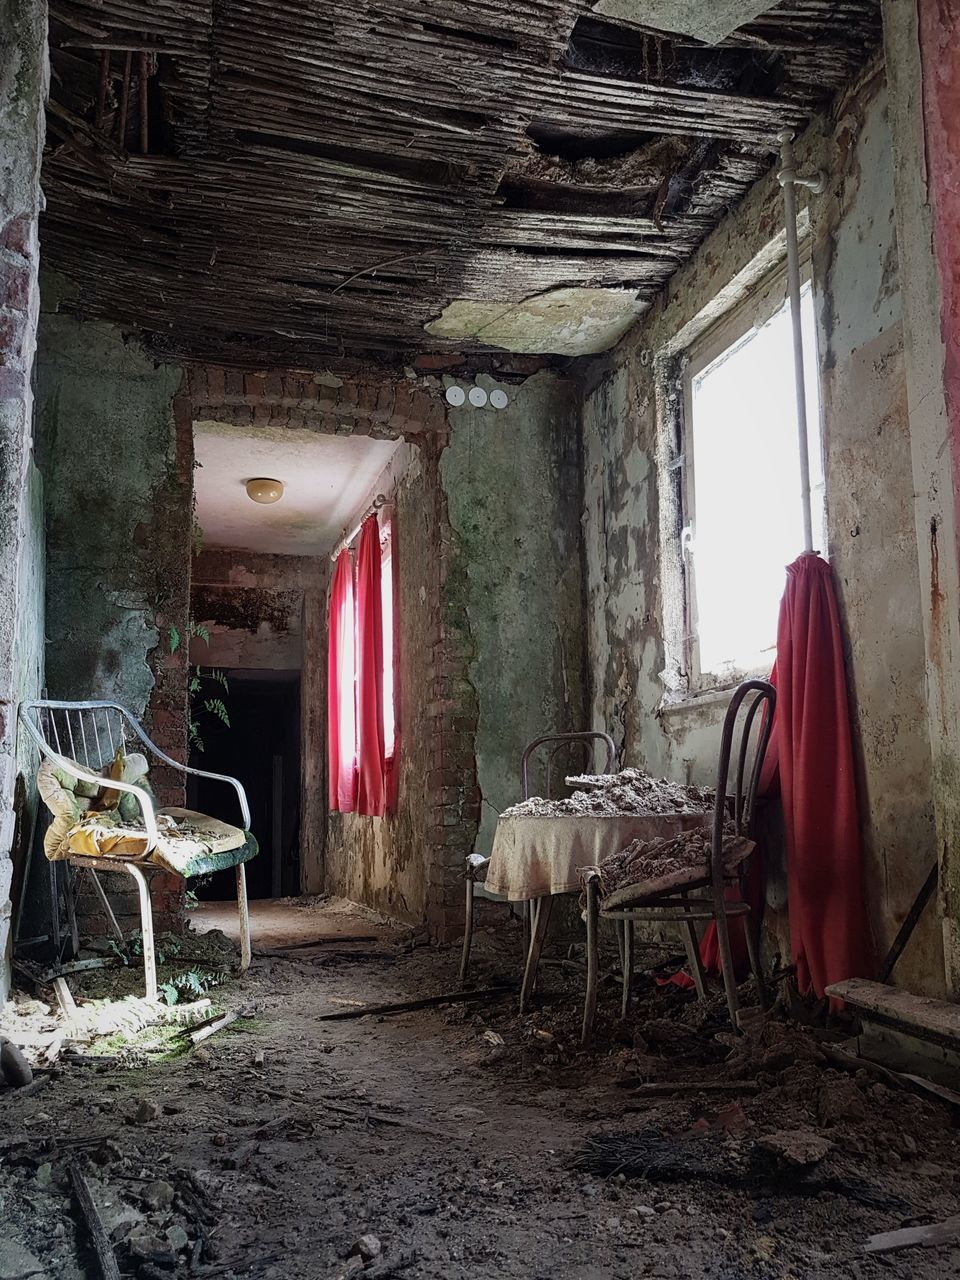 seat, chair, indoors, abandoned, obsolete, window, damaged, absence, no people, old, architecture, run-down, bad condition, built structure, decline, table, day, deterioration, furniture, building, messy, ruined, ceiling